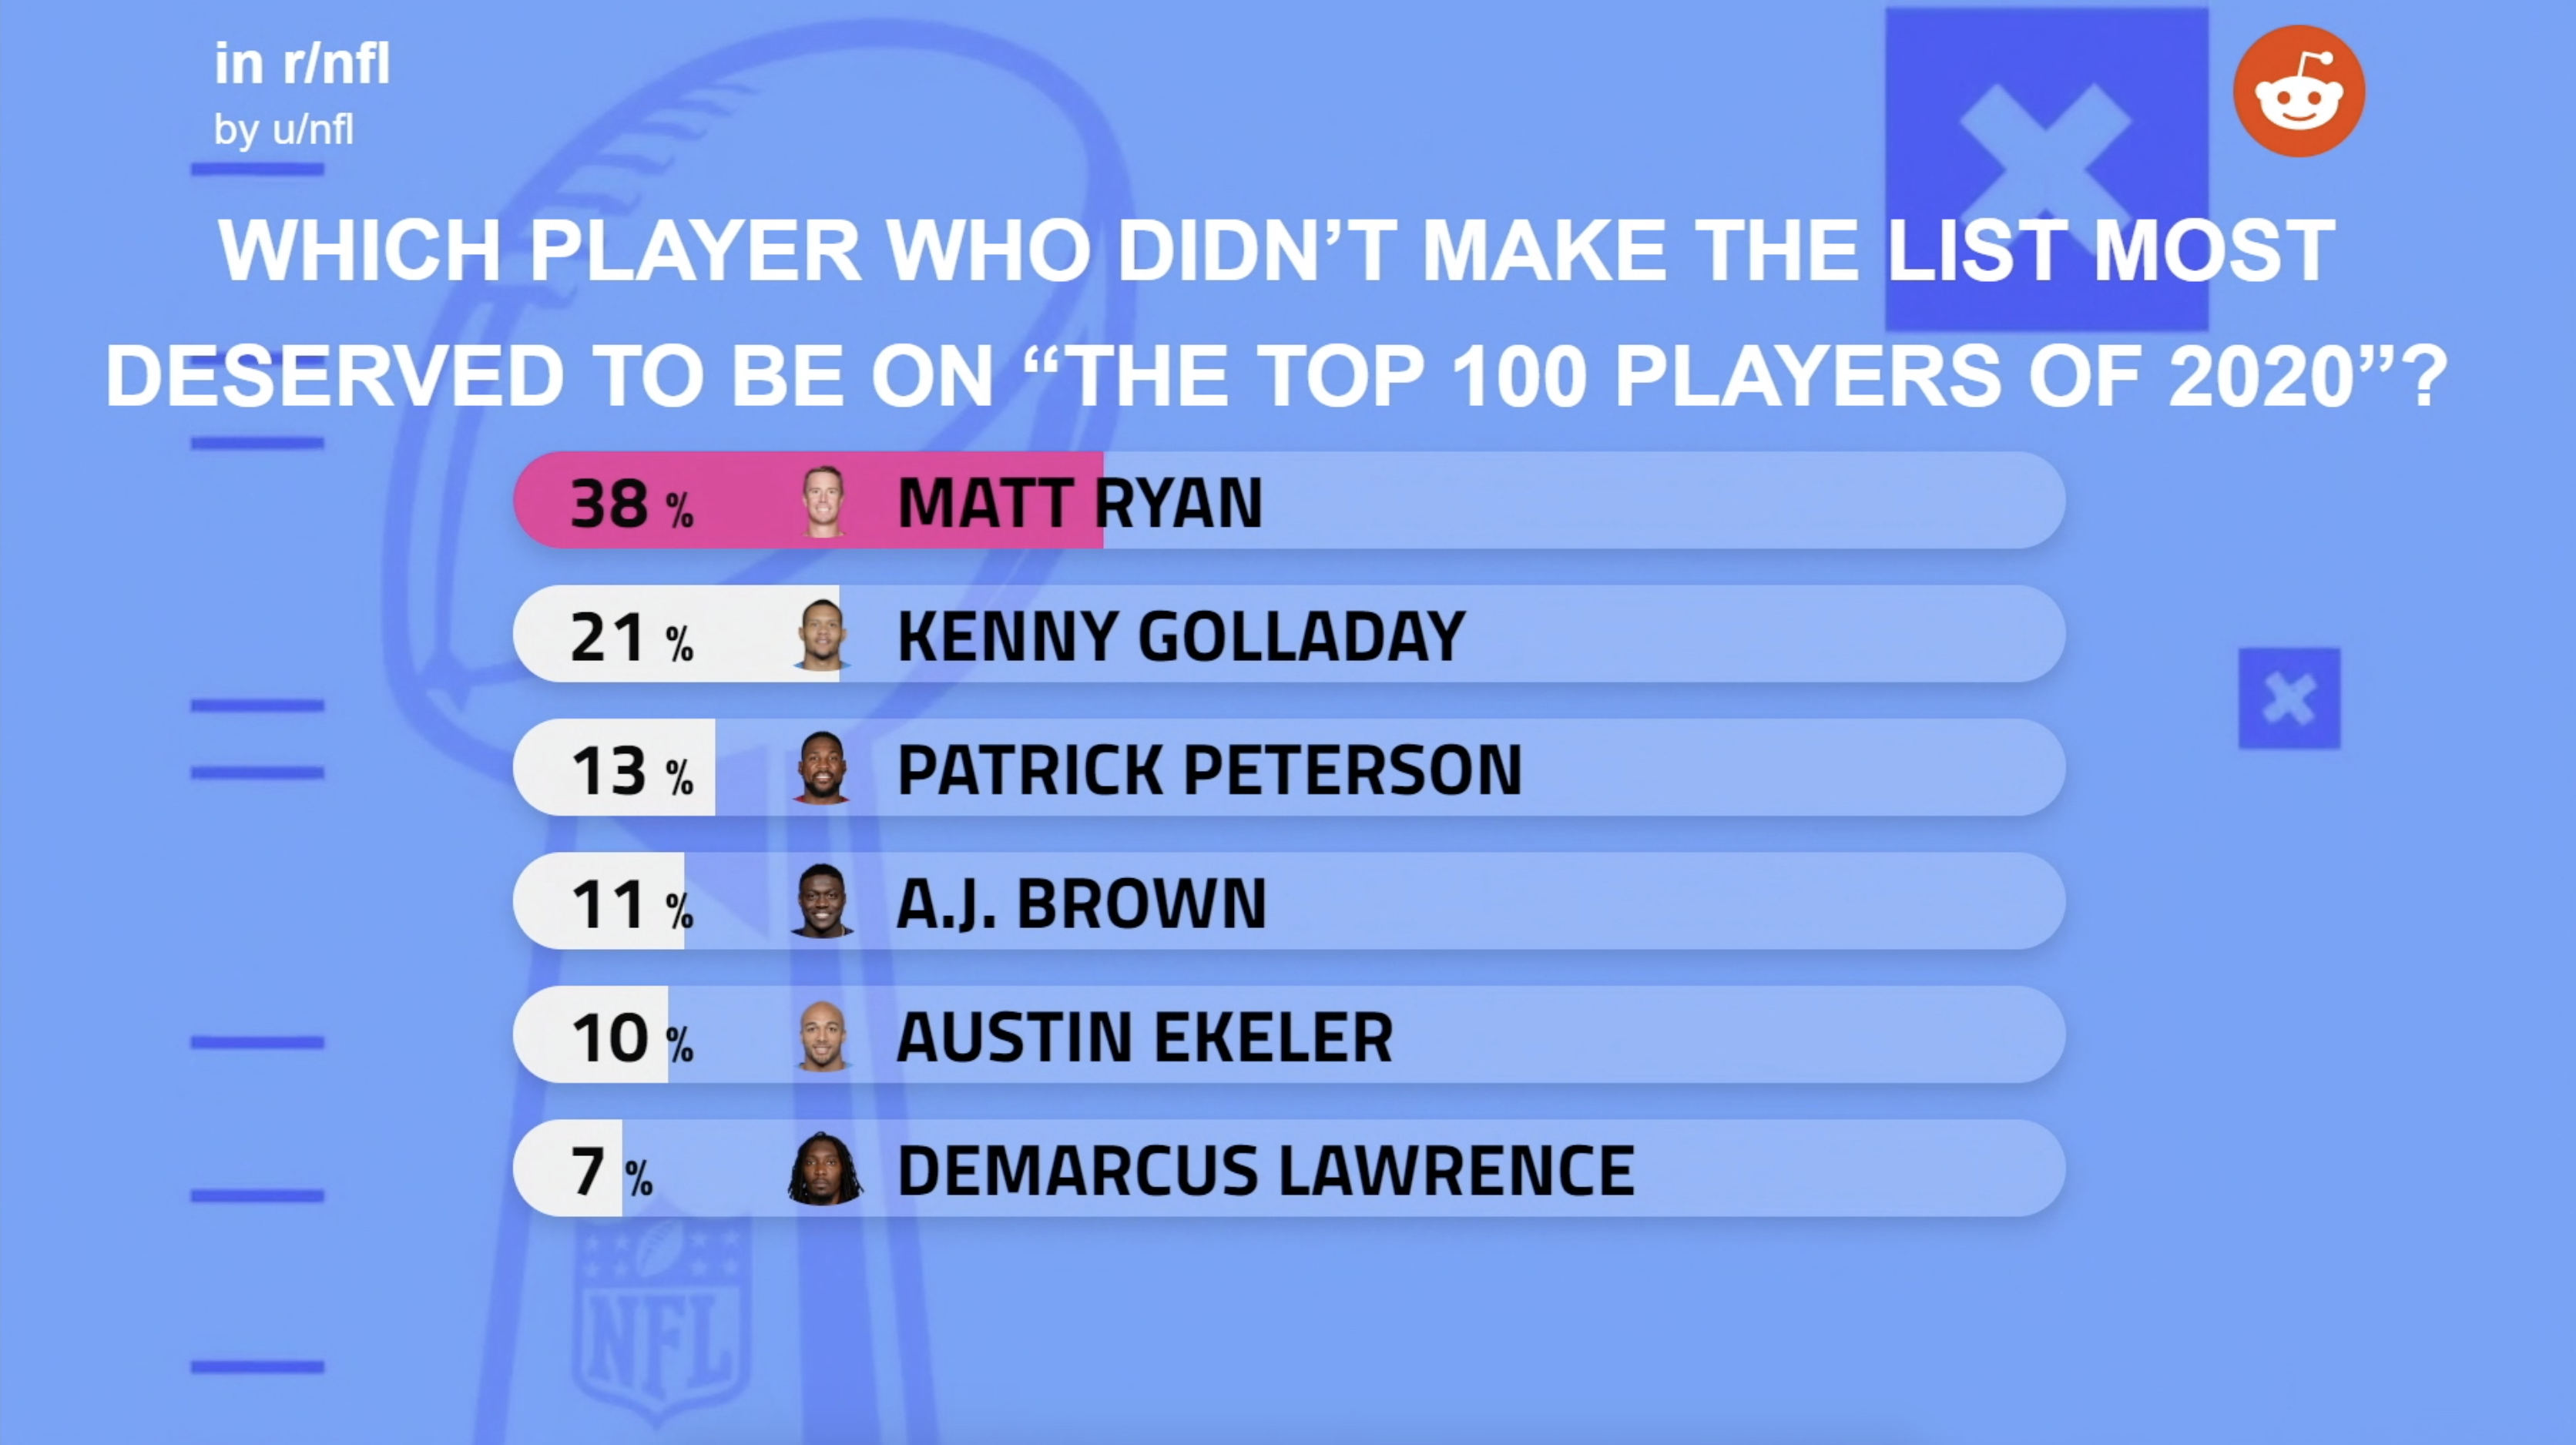 NFL Network Reddit Poll to prompt discussion on the NFL Top 100 Players of 2020 list